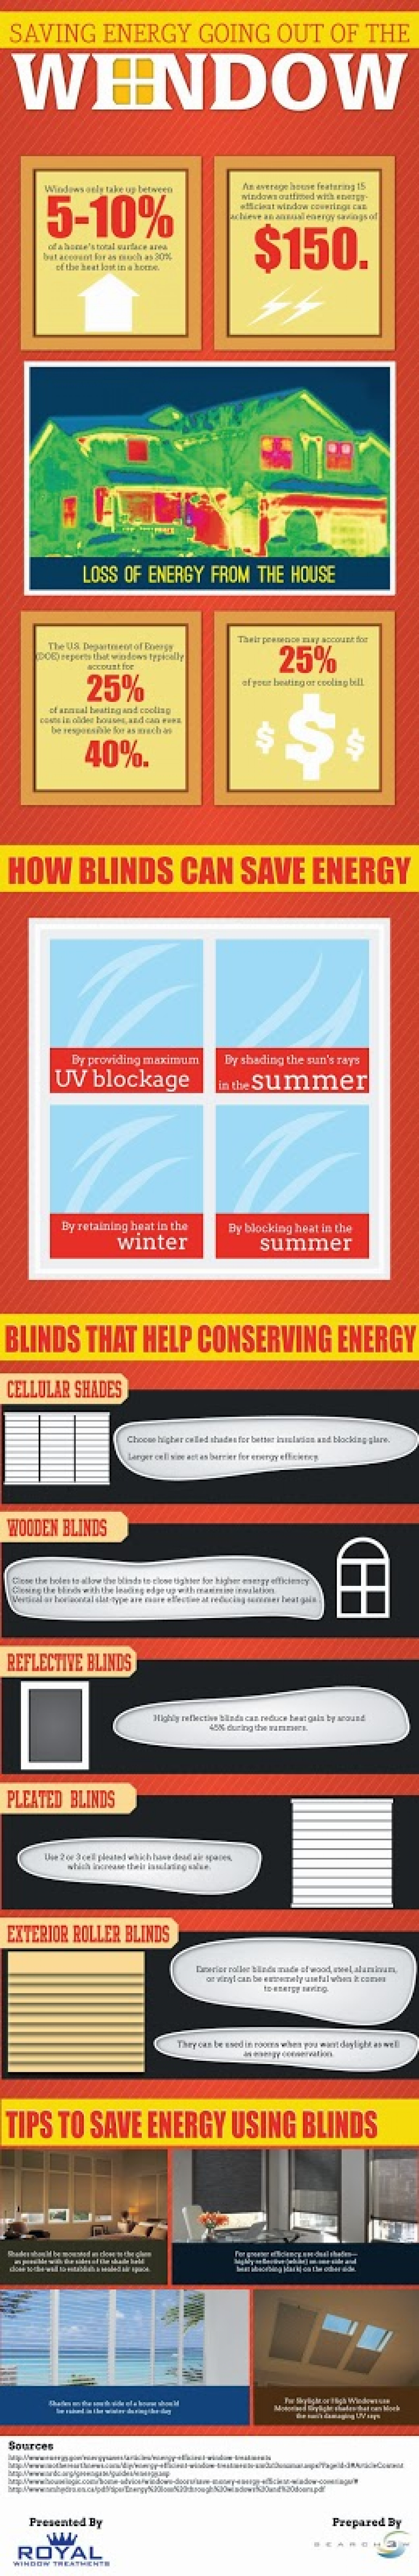 Saving Energy Going Out Of The Window Infographic